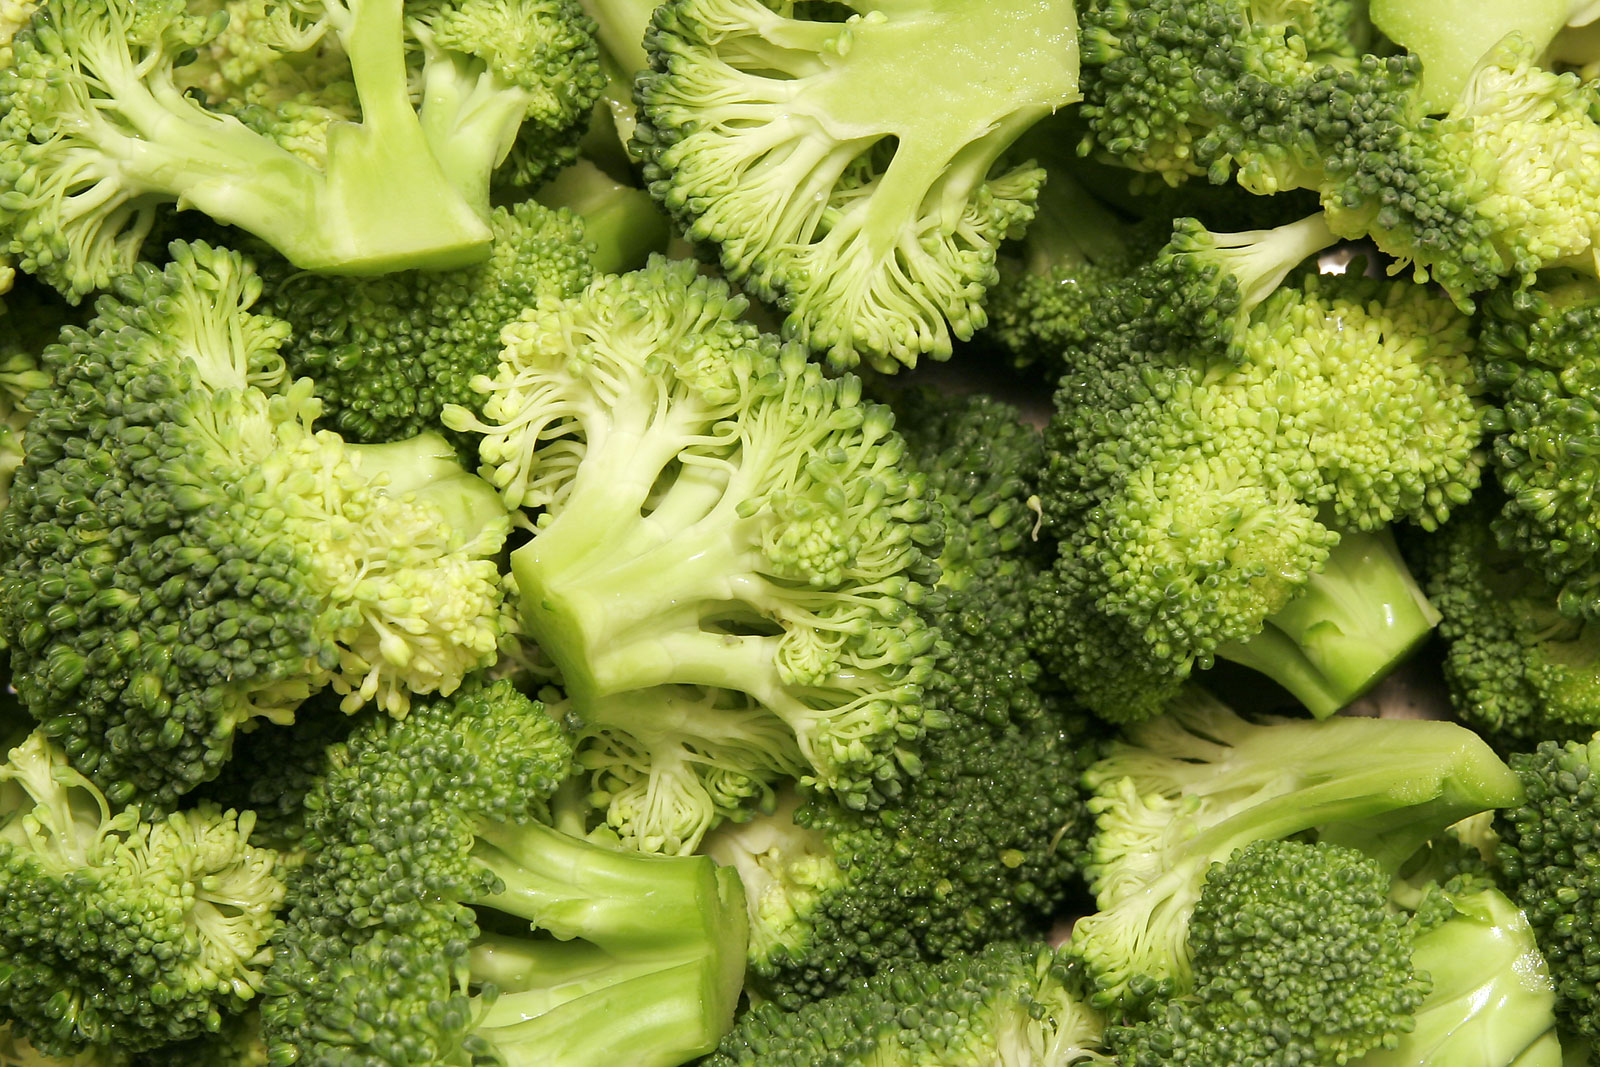 Study: chemicals from cruciferous veggies kill cancer cells - Wikinews, the  free news source